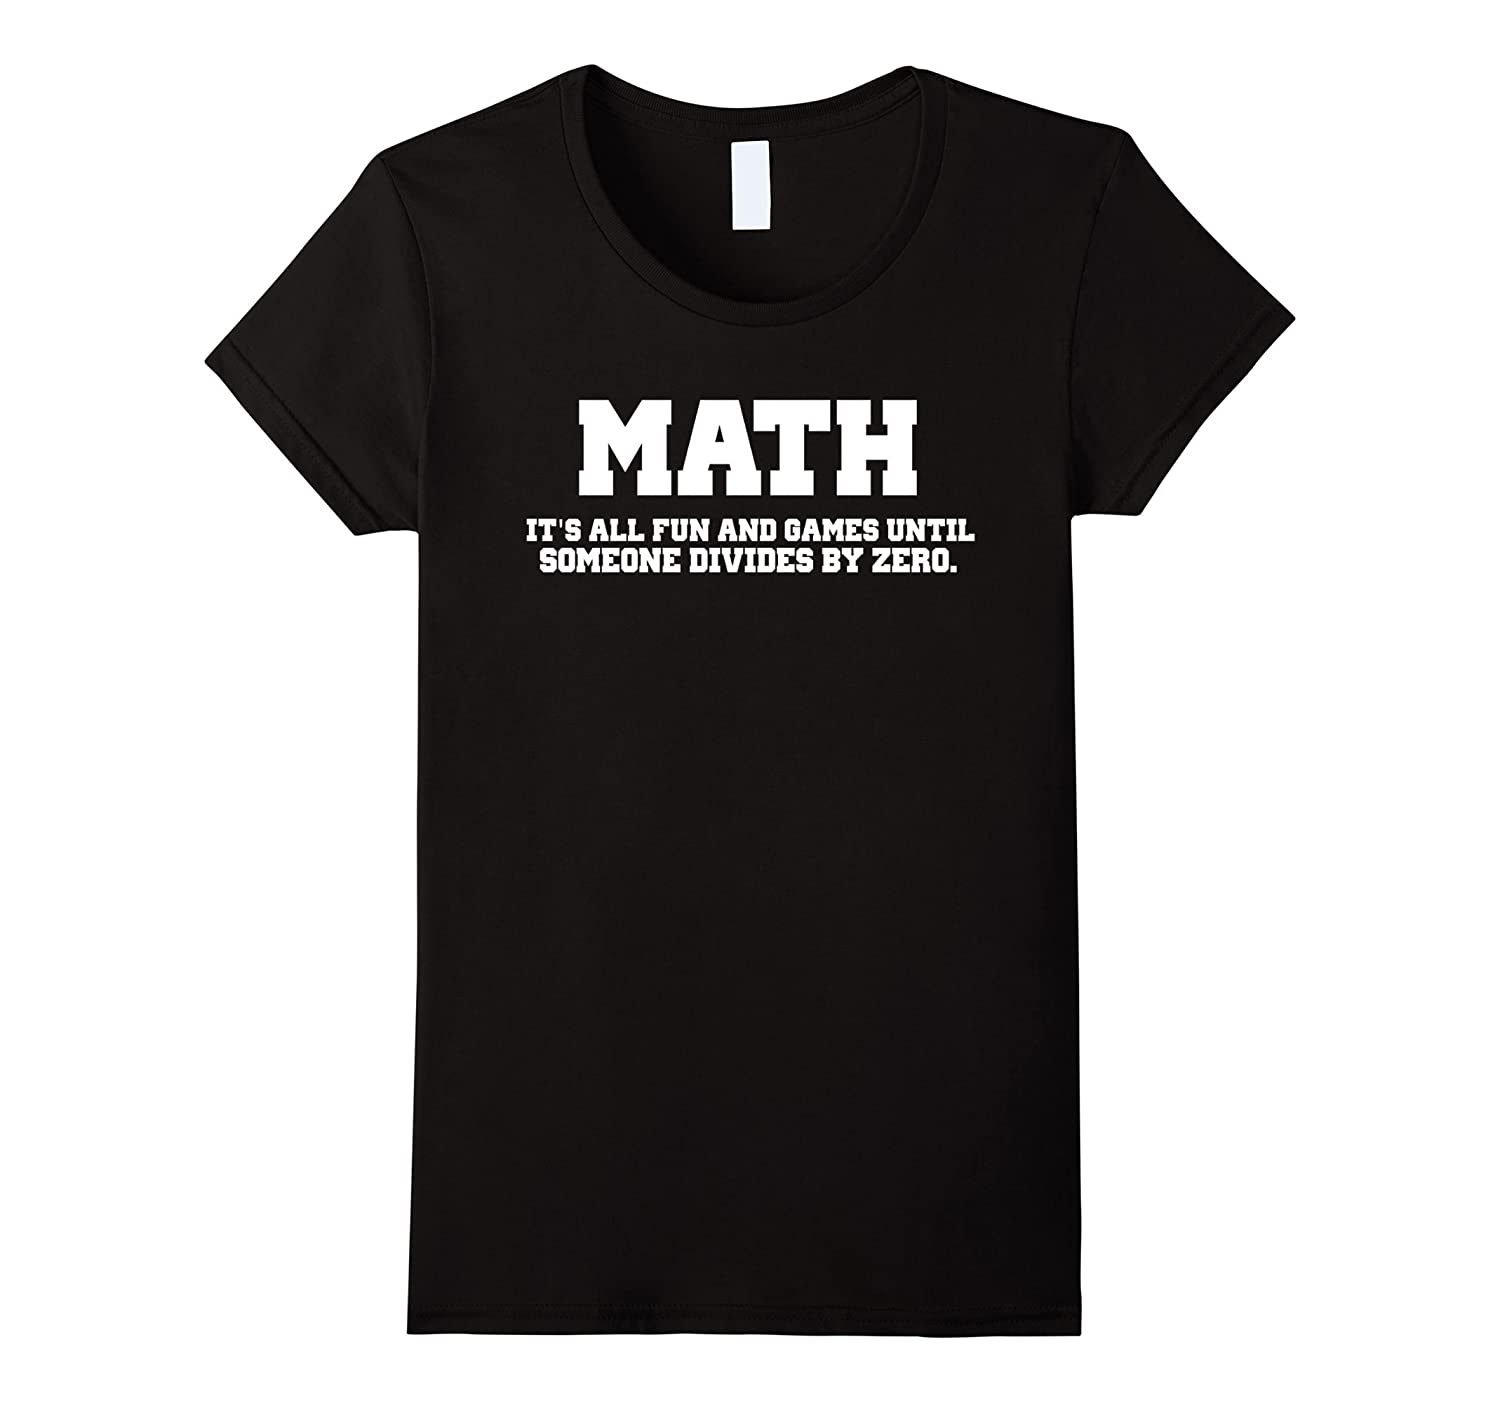 MATH IT'S ALL FUN AND GAMES UNTIL SOMEONE DIVIDES BY ZERO.-Teevkd